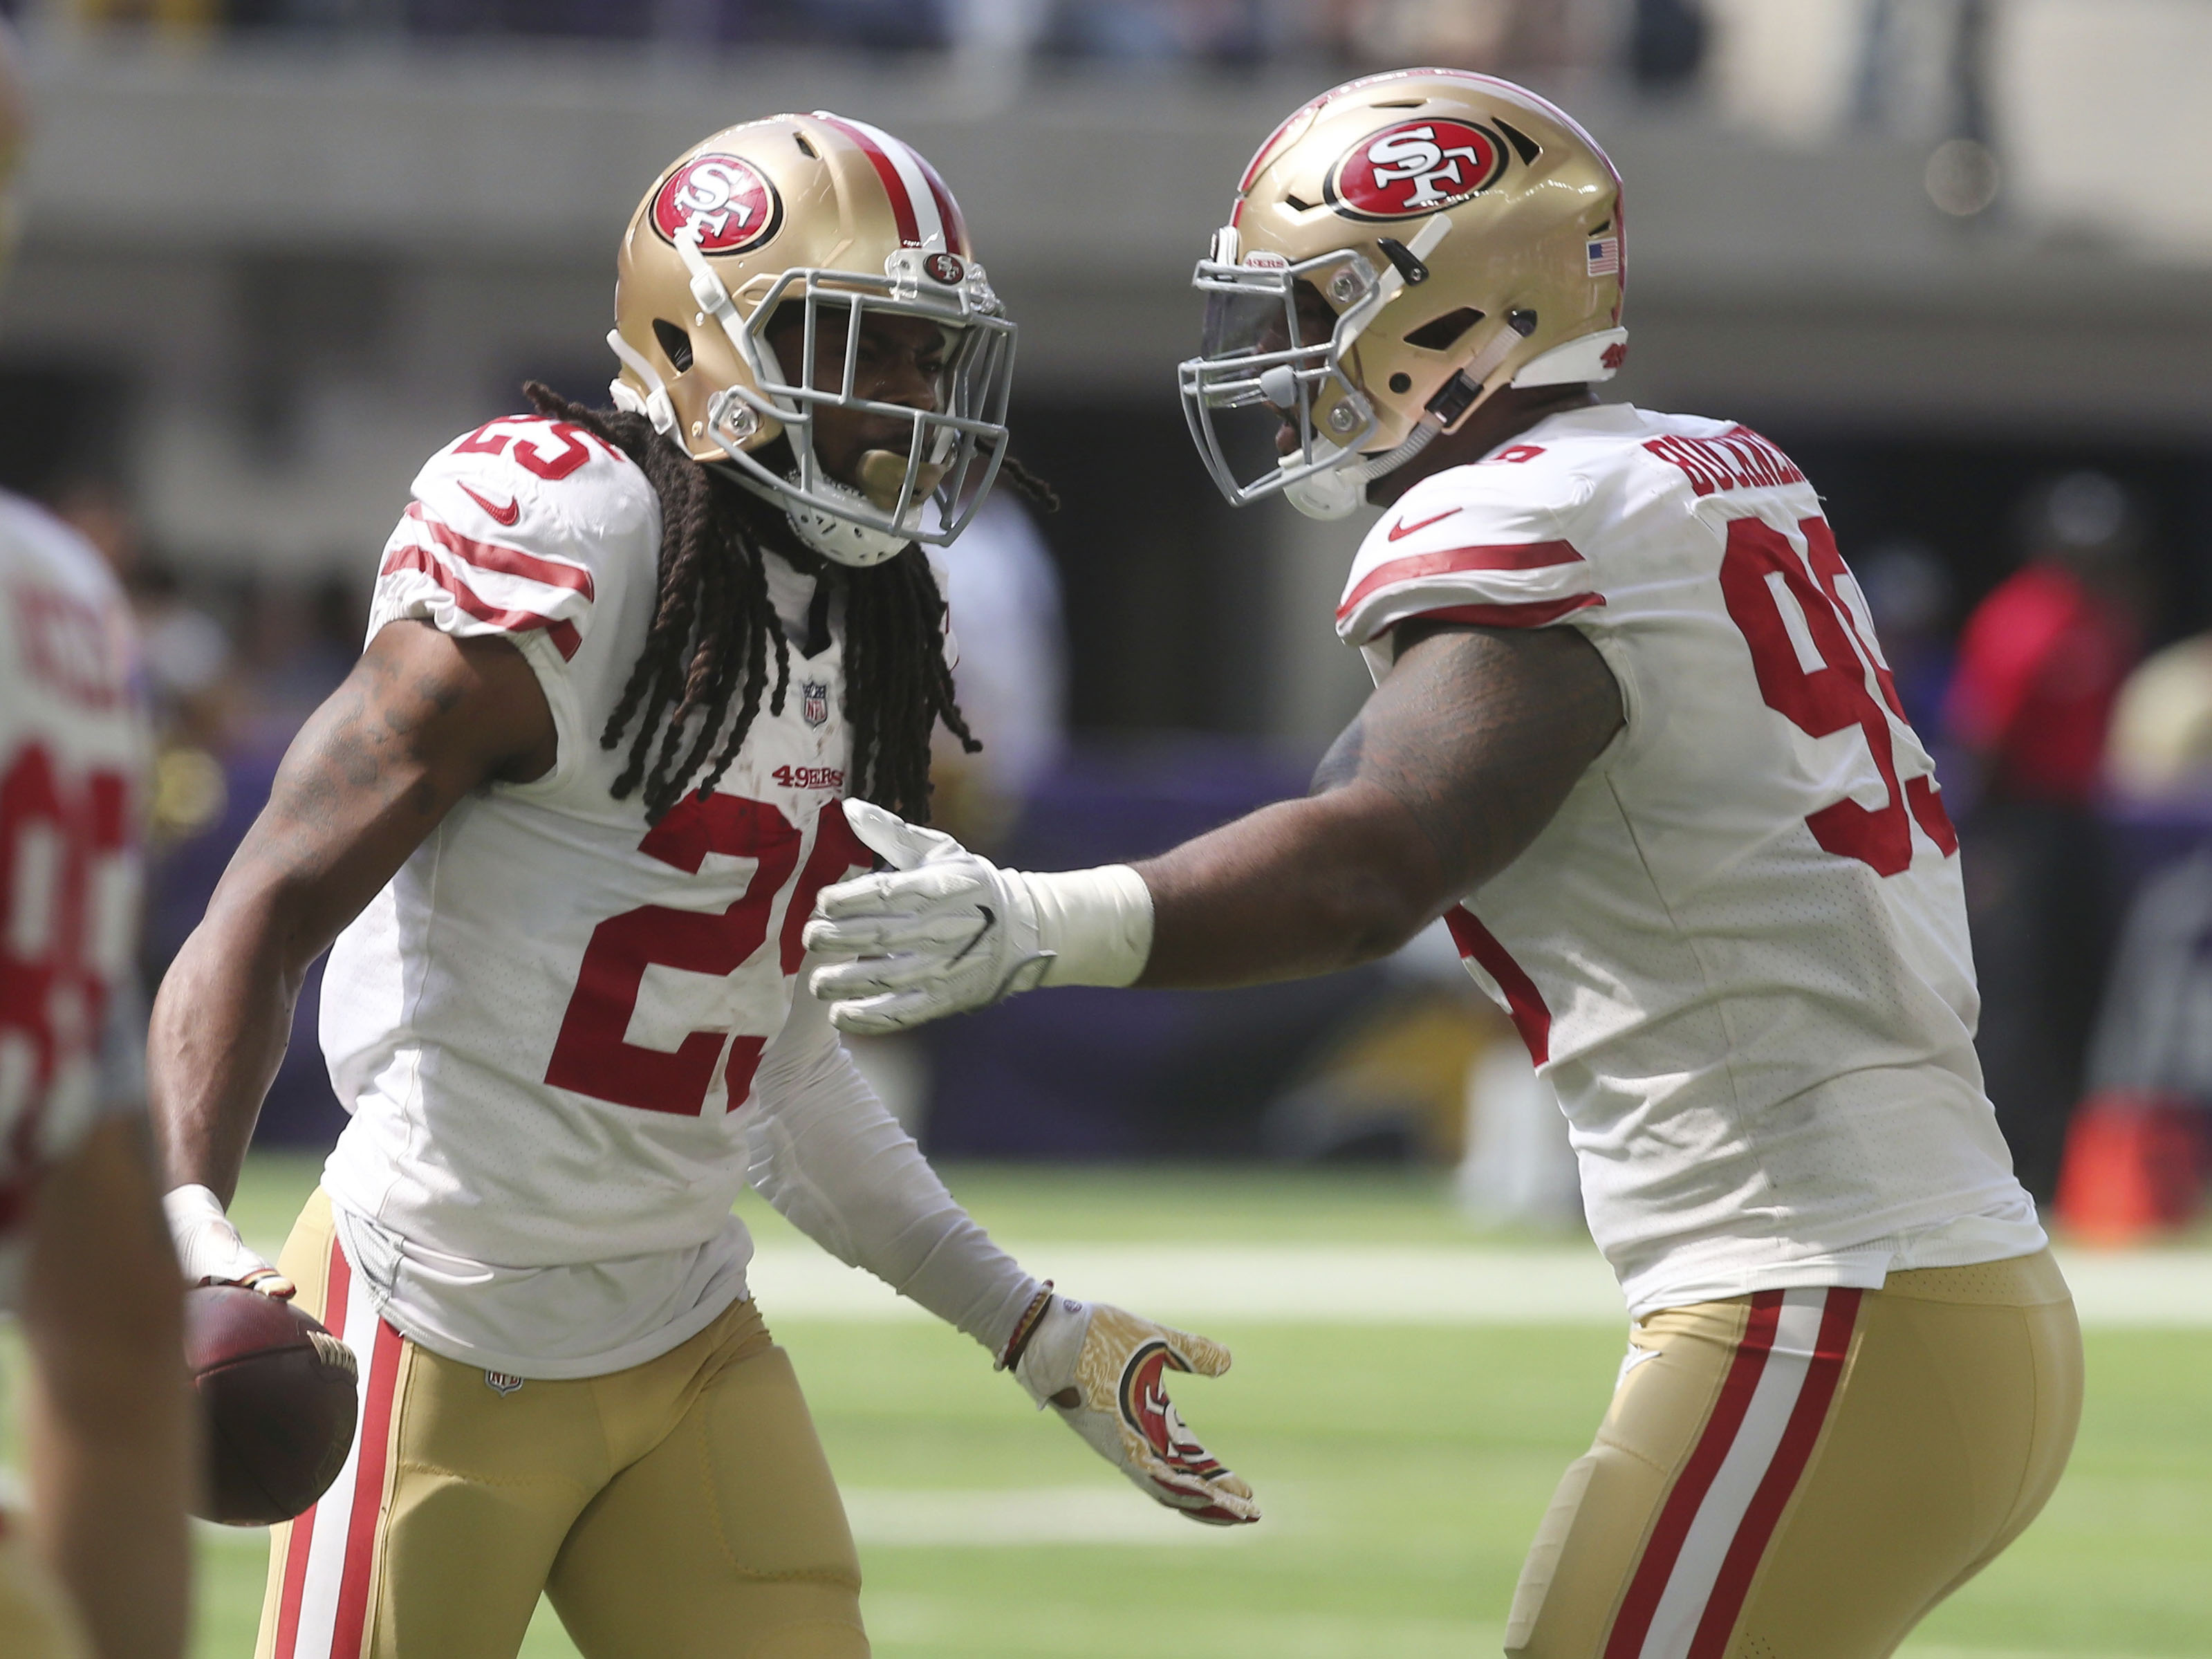 official photos 7c1bc 5316c Niners remind Richard Sherman of 'Legion of Boom' - NFL.com